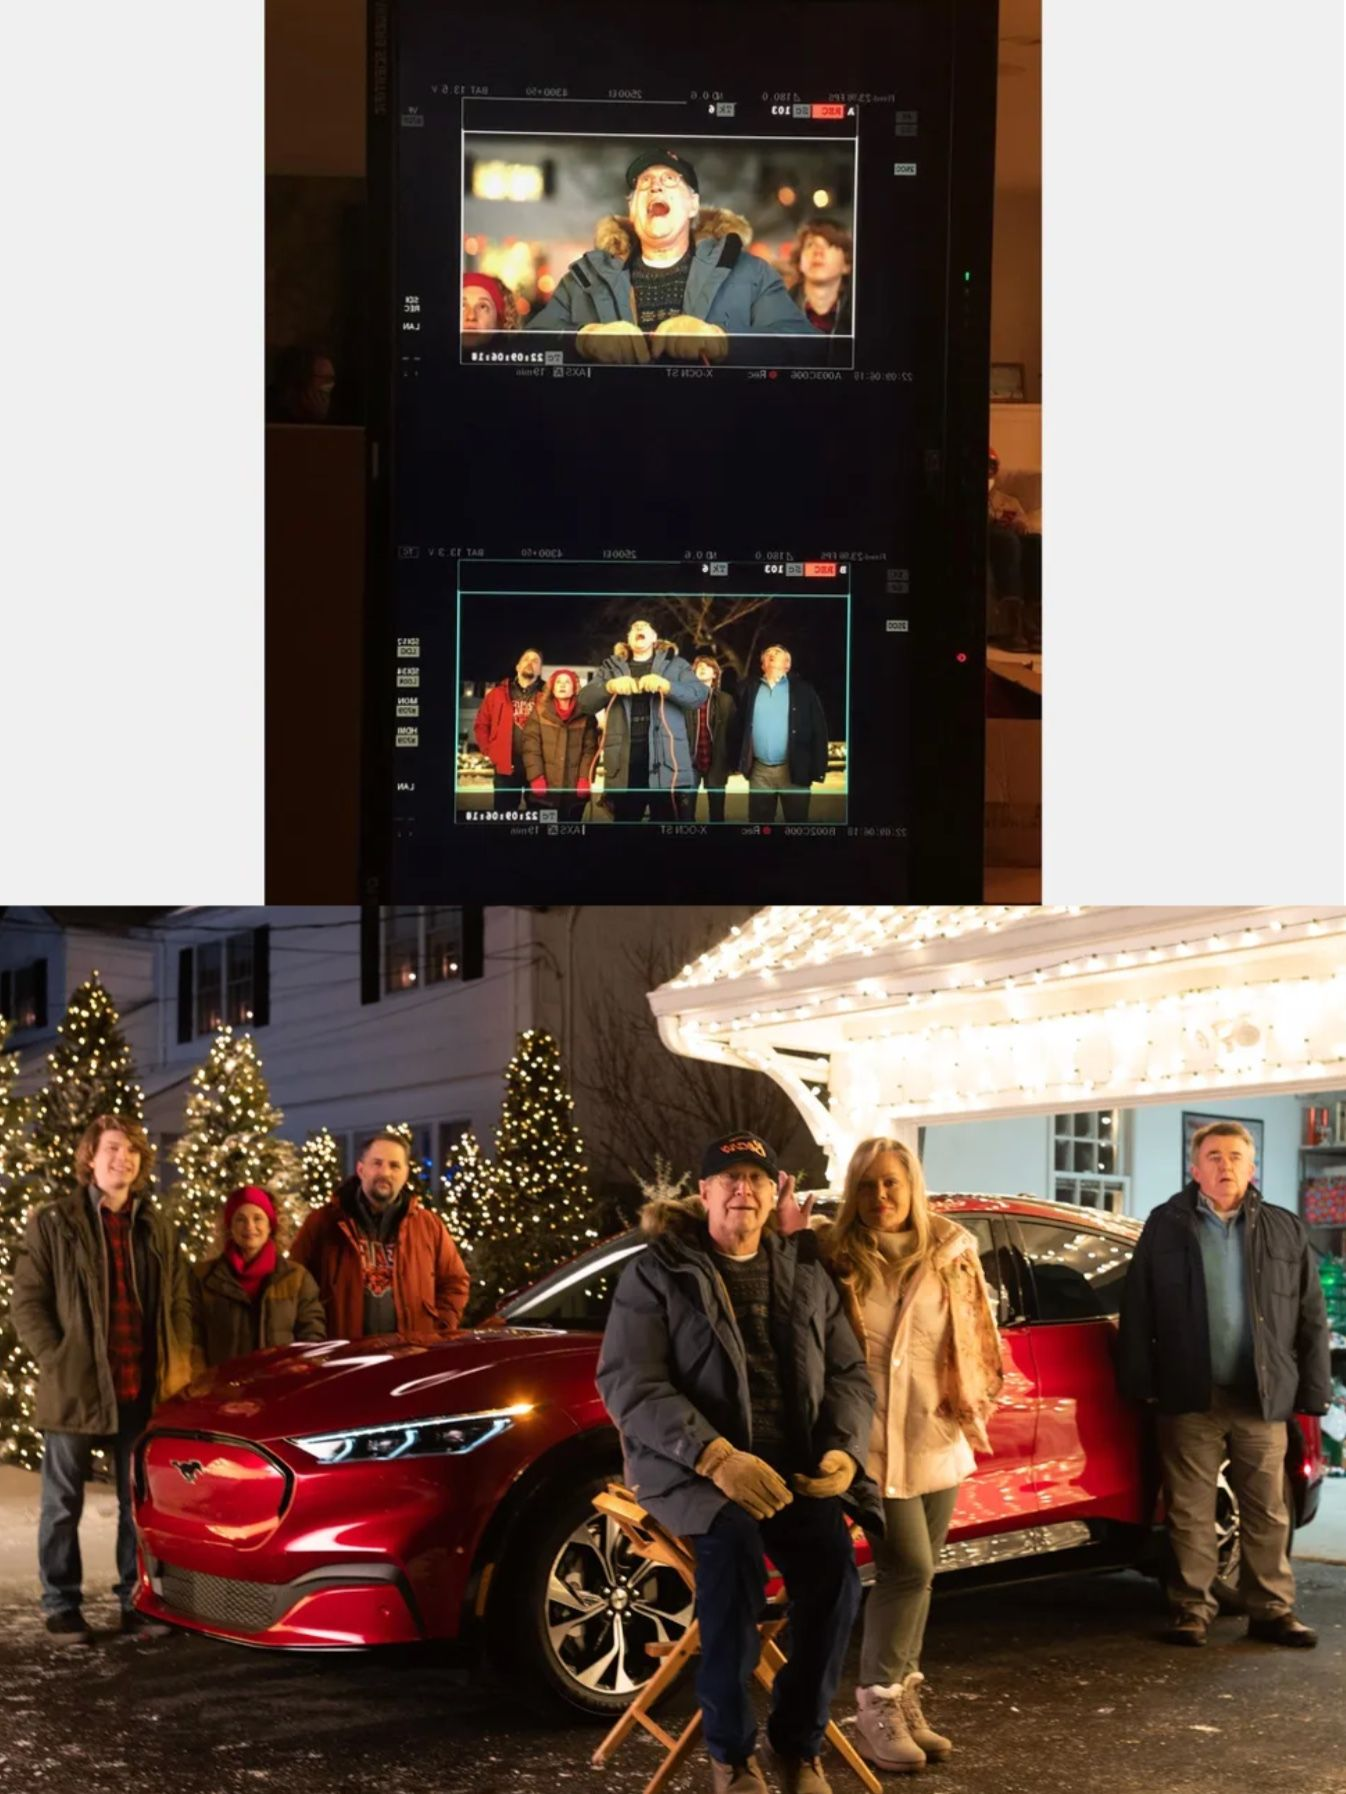 Ford Car Christmas Ads 2021 Behind The Scenes 2021 Ford Mustang Mach E Meets The Griswolds Ford Mustang Mustang Photo